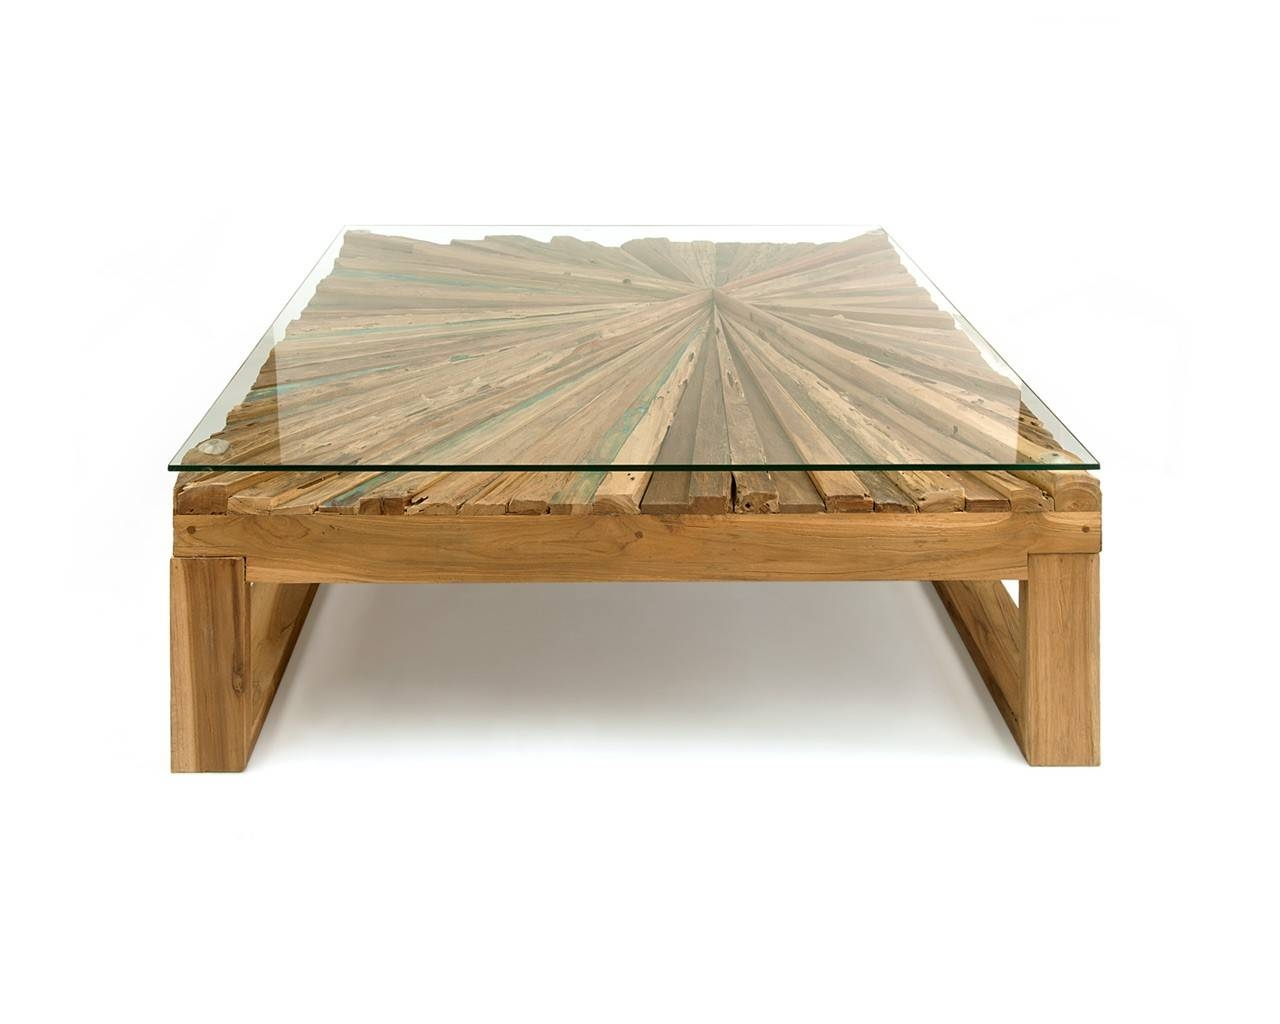 Sunburst Rustic Coffee Table - Eco-Friendly Furniture for Rustic Wooden Coffee Tables (Image 14 of 15)